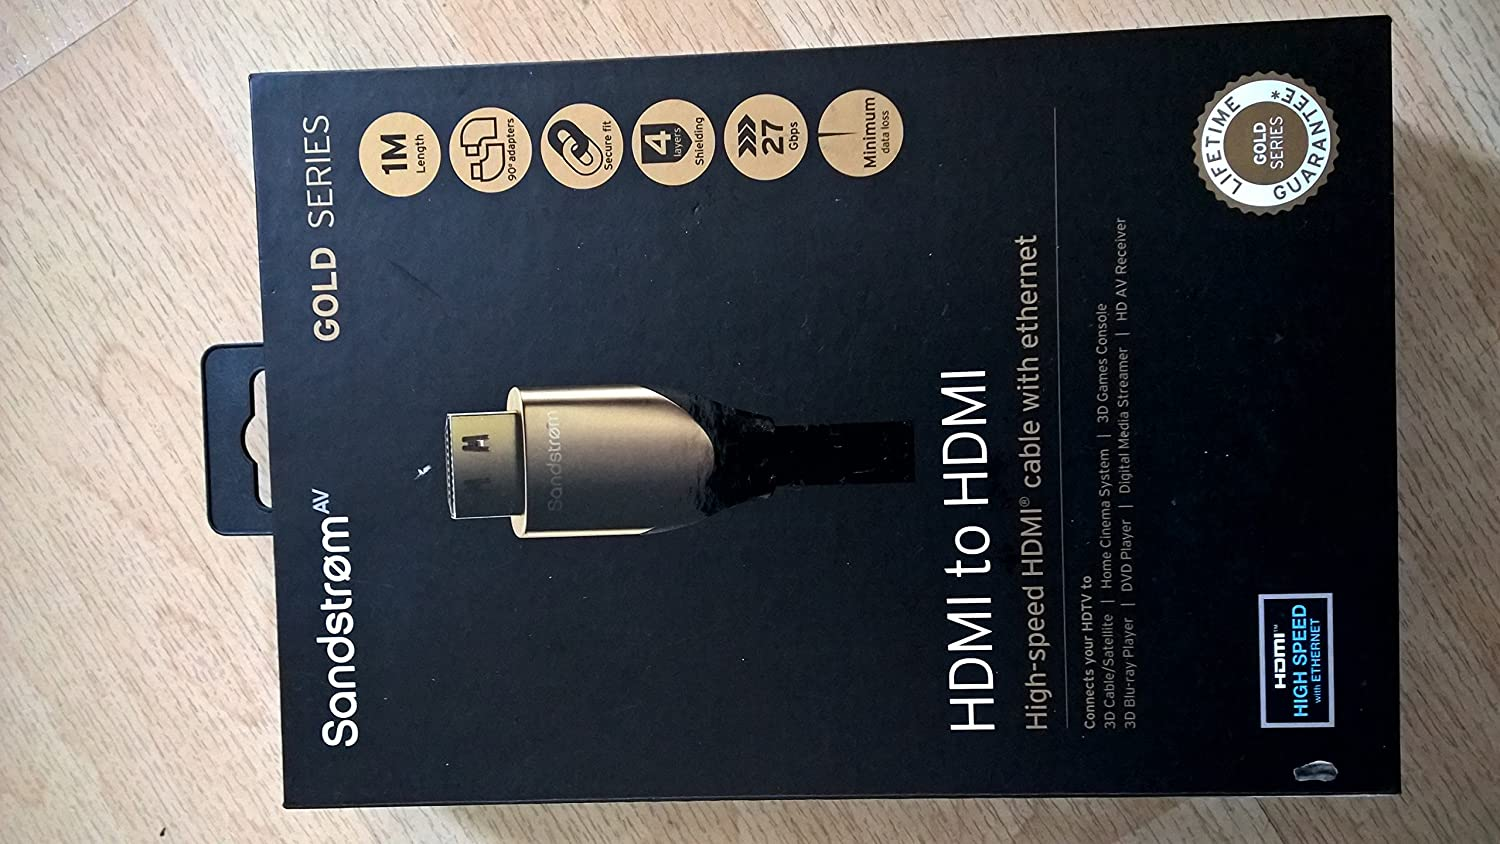 Sandstrom Av Gold Series Hdmi Cable 1 Metre Home Ethernet Wiring Camera Photo